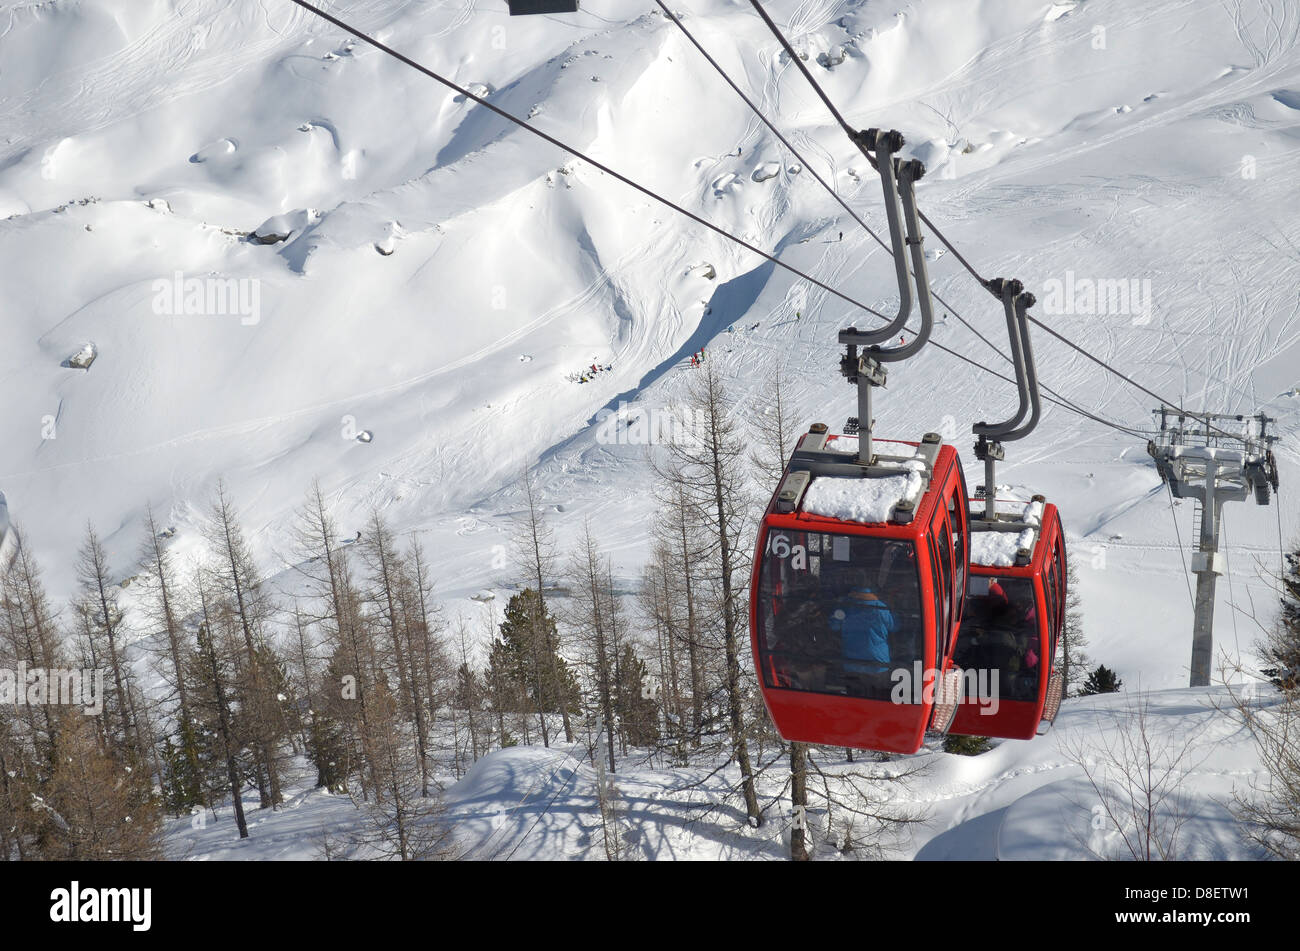 Two red cablecars climbing snow covered mountain, seen from above Stock Photo